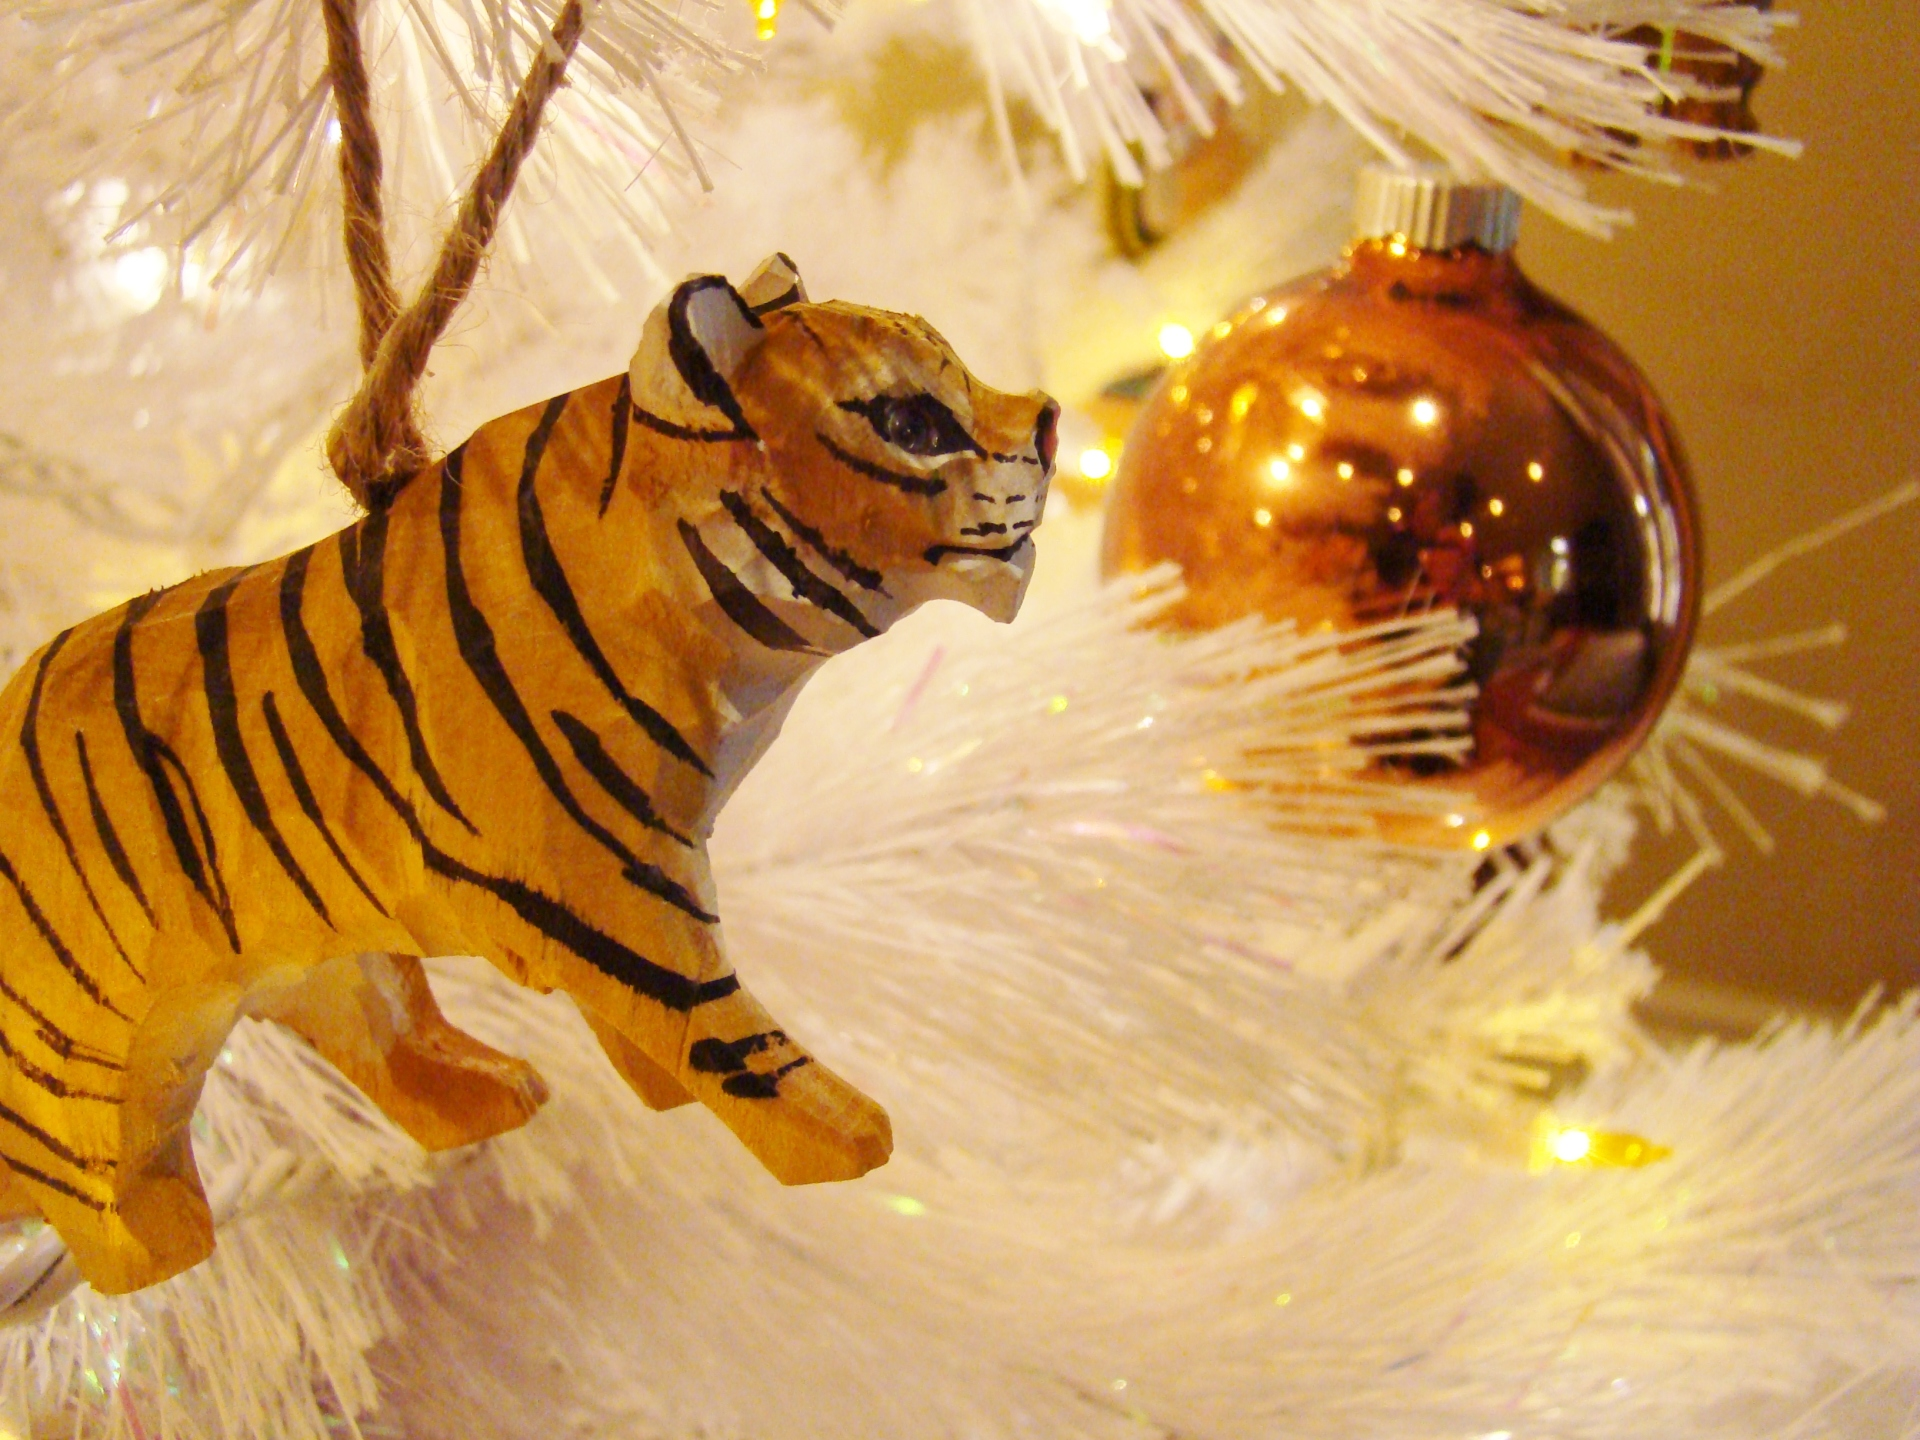 Fiorito Interior Design, interior design, Homes For The Holidays, African, holiday tree, carved wooden tiger ornament